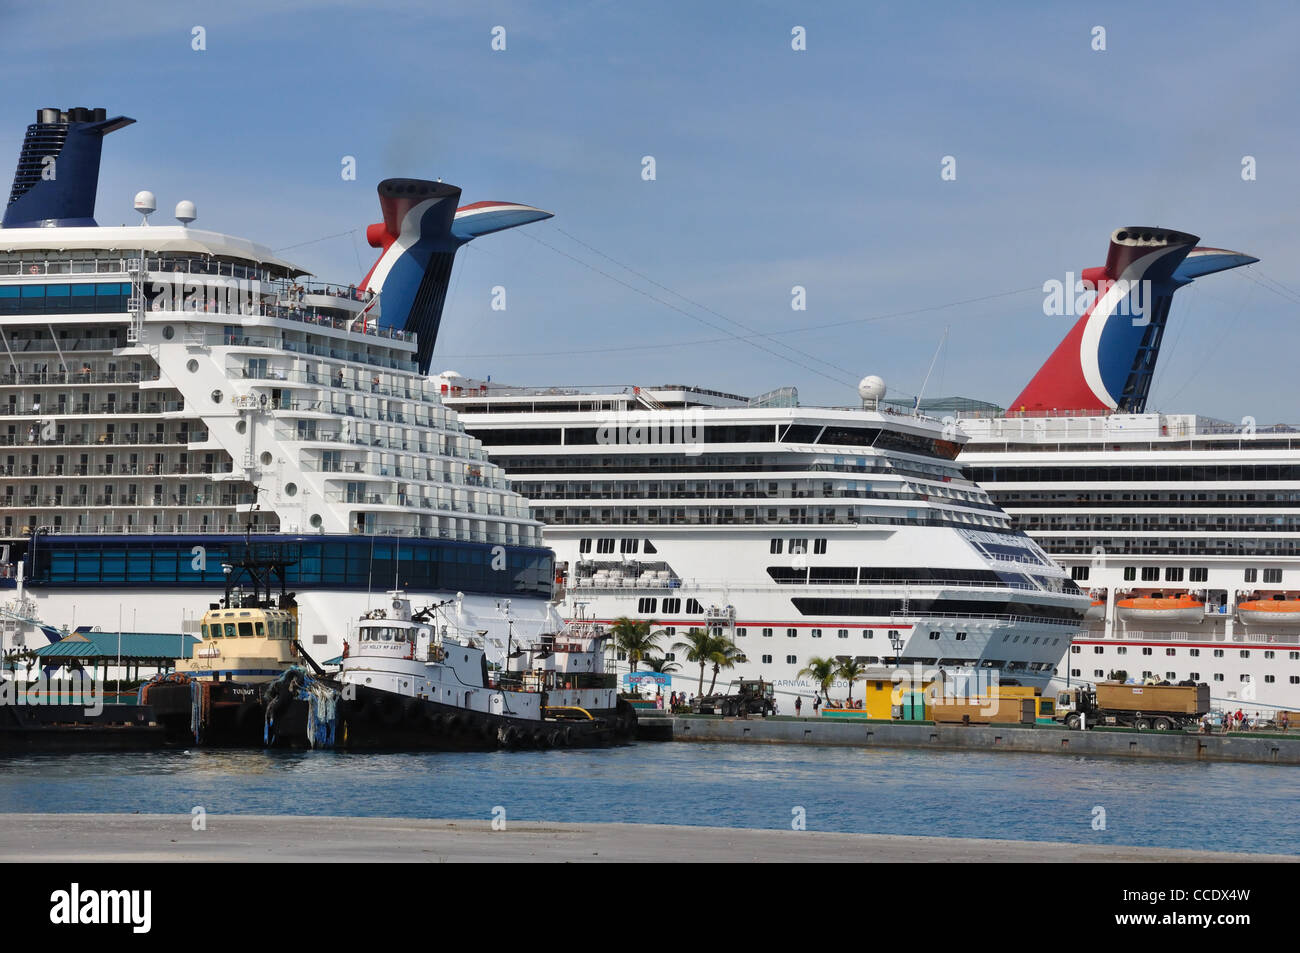 Cruise ships docked in port nassau bahamas stock photo royalty free image 42102505 alamy - Cruise port nassau bahamas ...